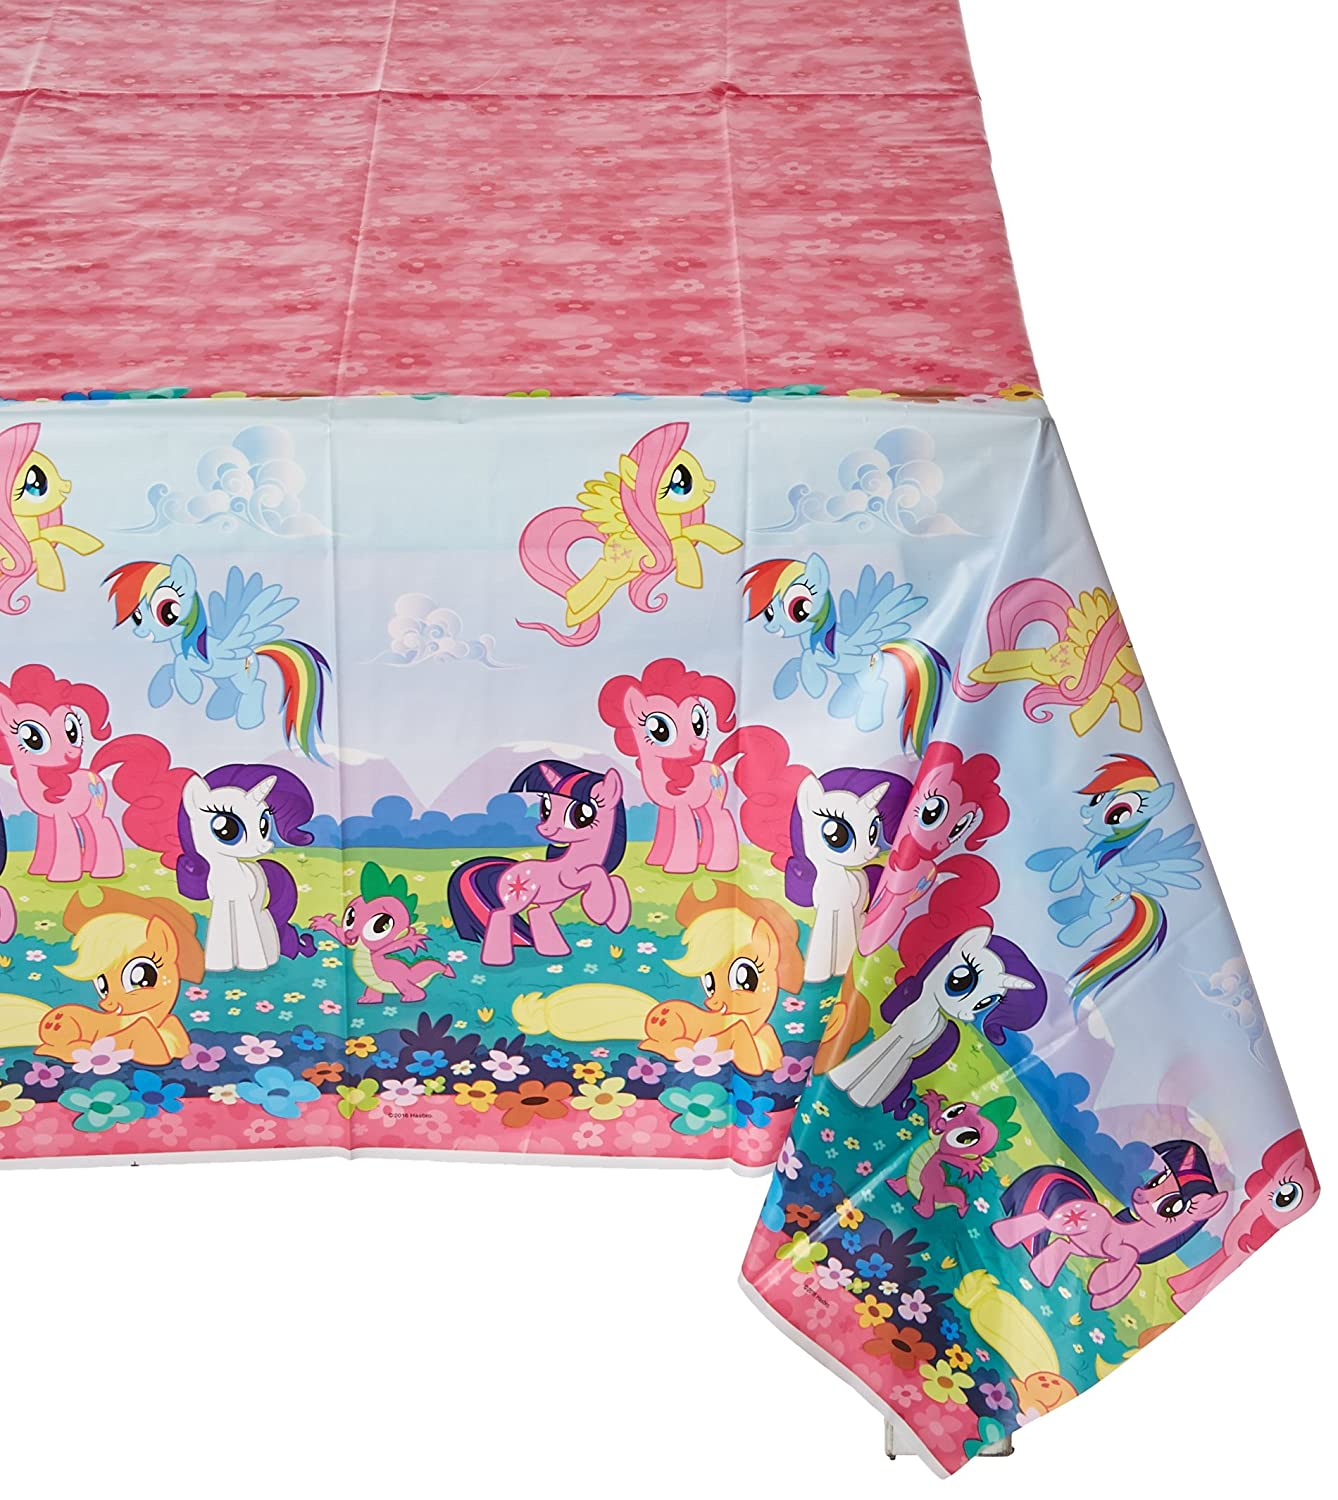 MY LITTLE PONY FRIENDSHIP IS MAGIC PAPER TABLECOVER ~ Birthday Party Supplies